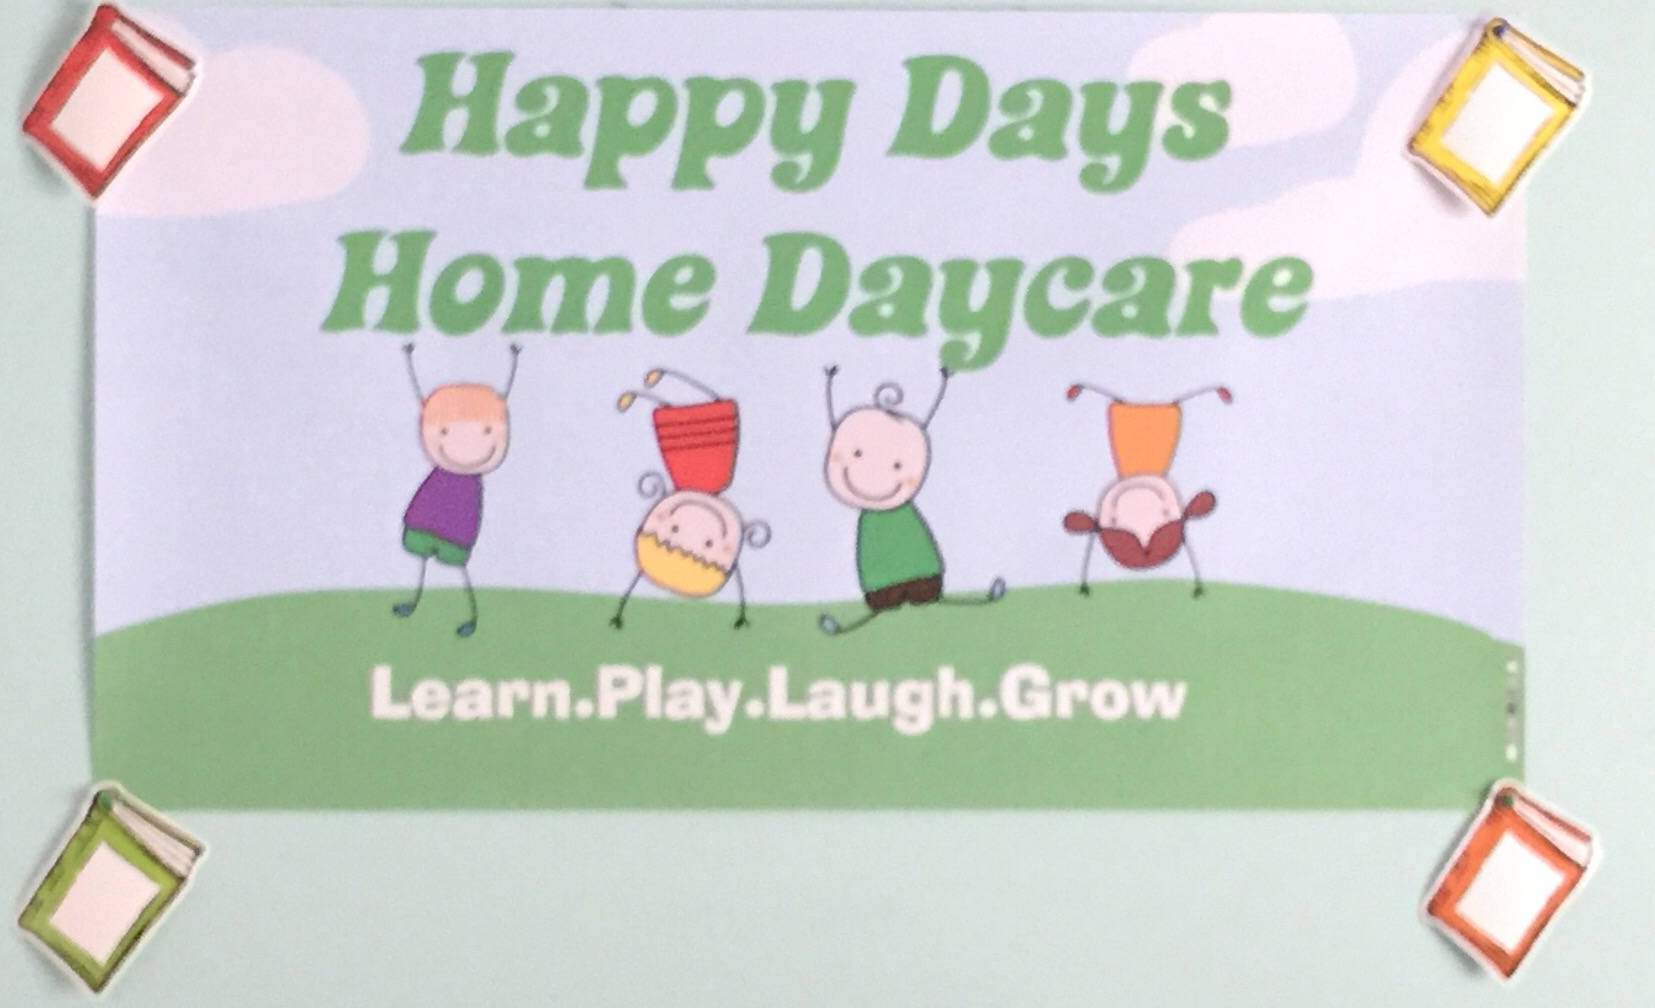 Happy Days Home Daycare